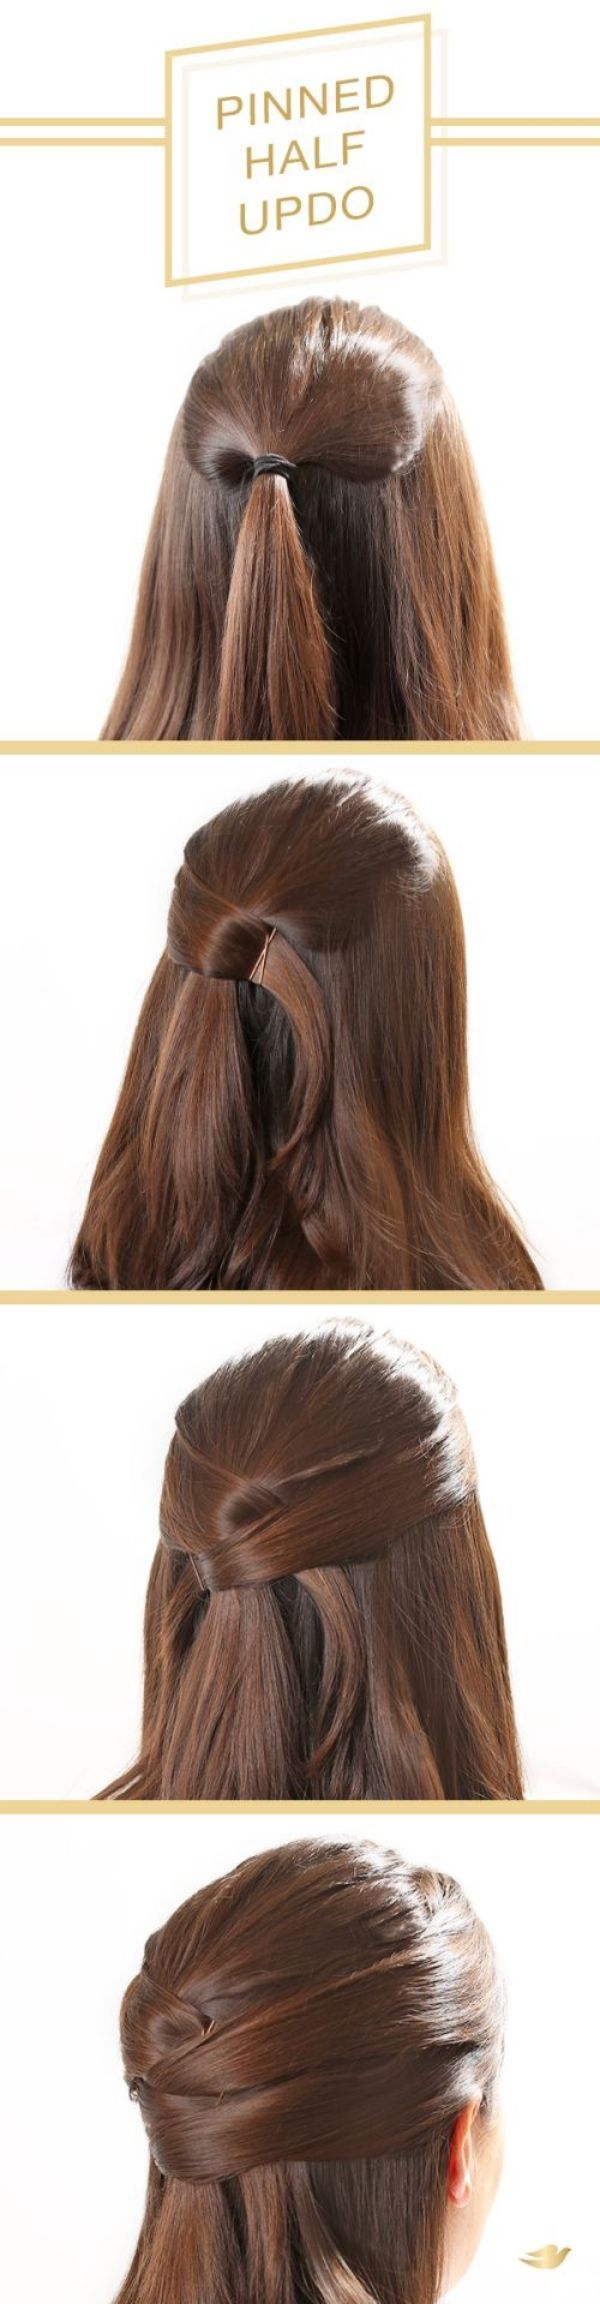 60 simple five minute hairstyles for office women (complete